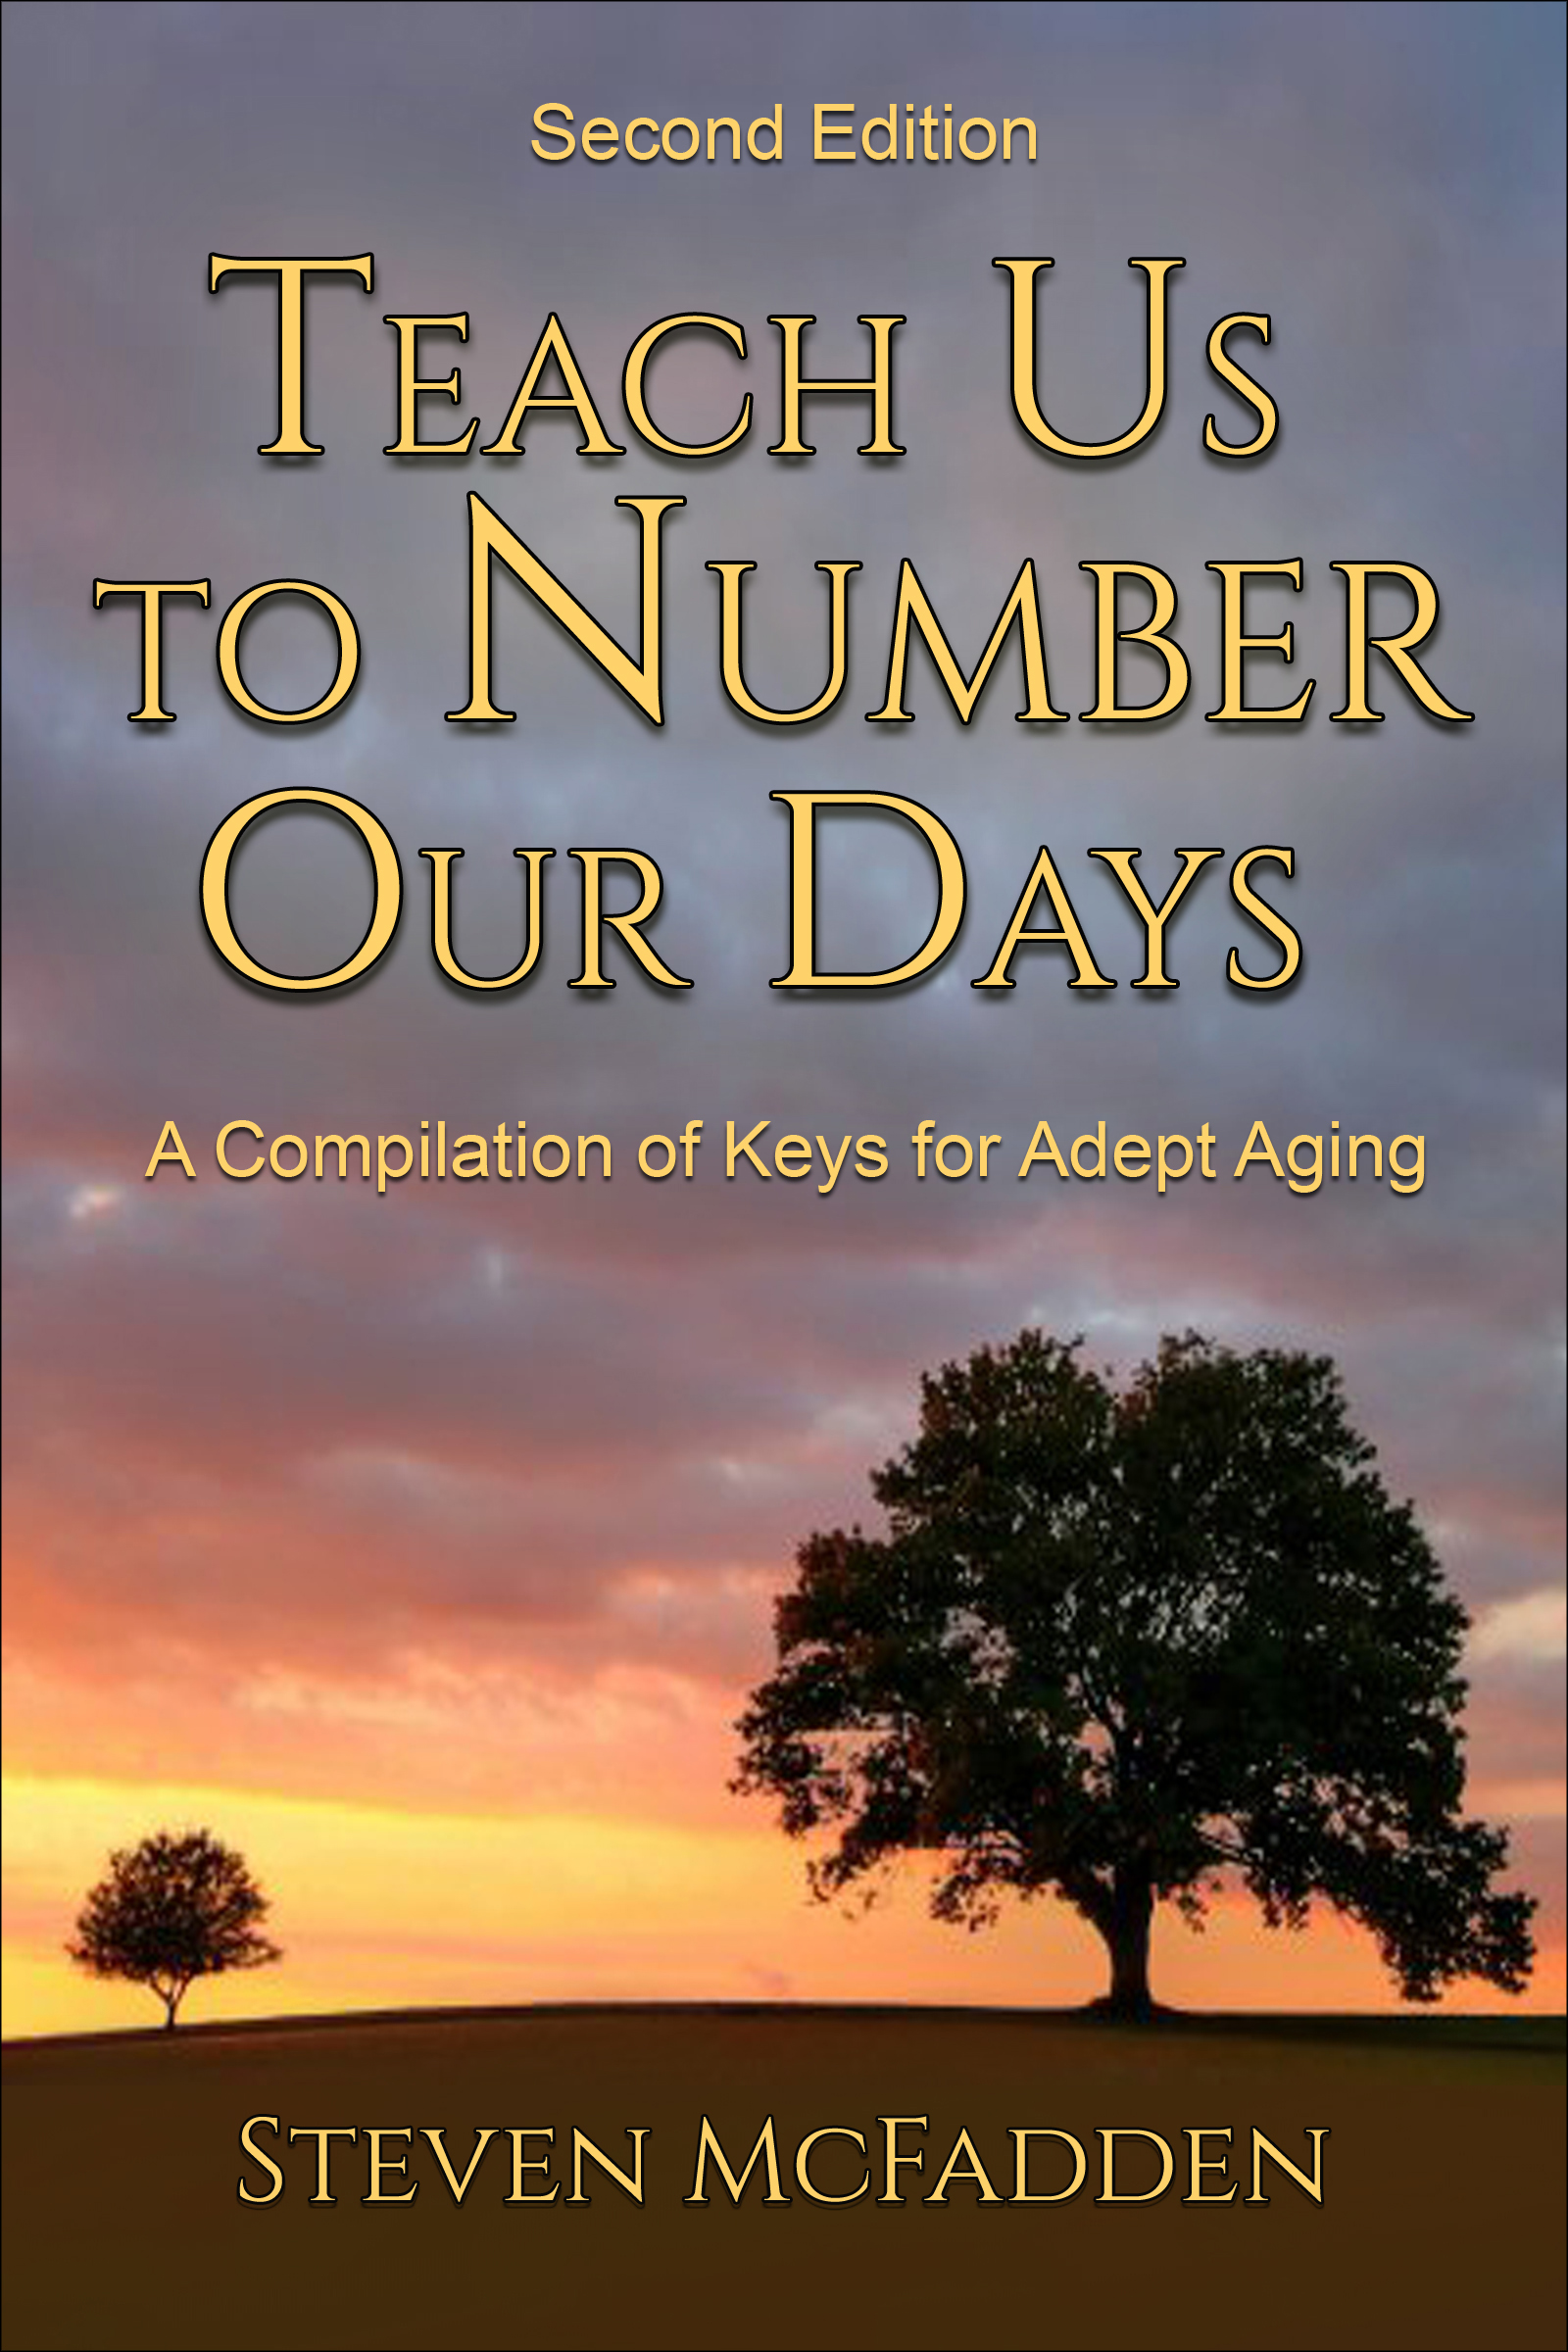 Teach Us to Number Our Days: A Compilation of Keys for Adept Aging